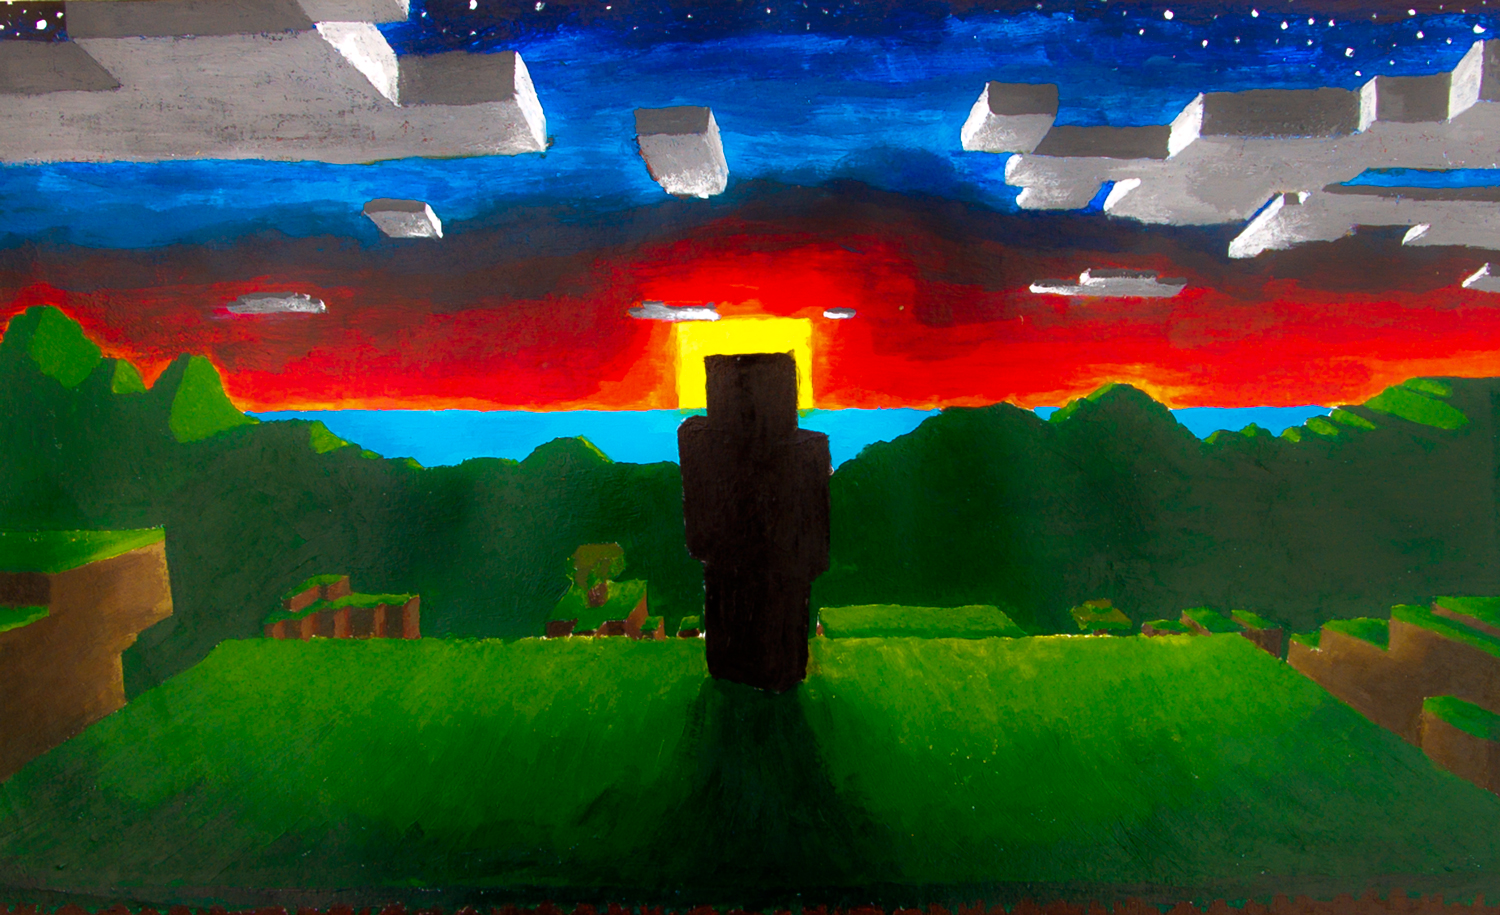 Minecraft At Sunset By Cameronmc On Newgrounds